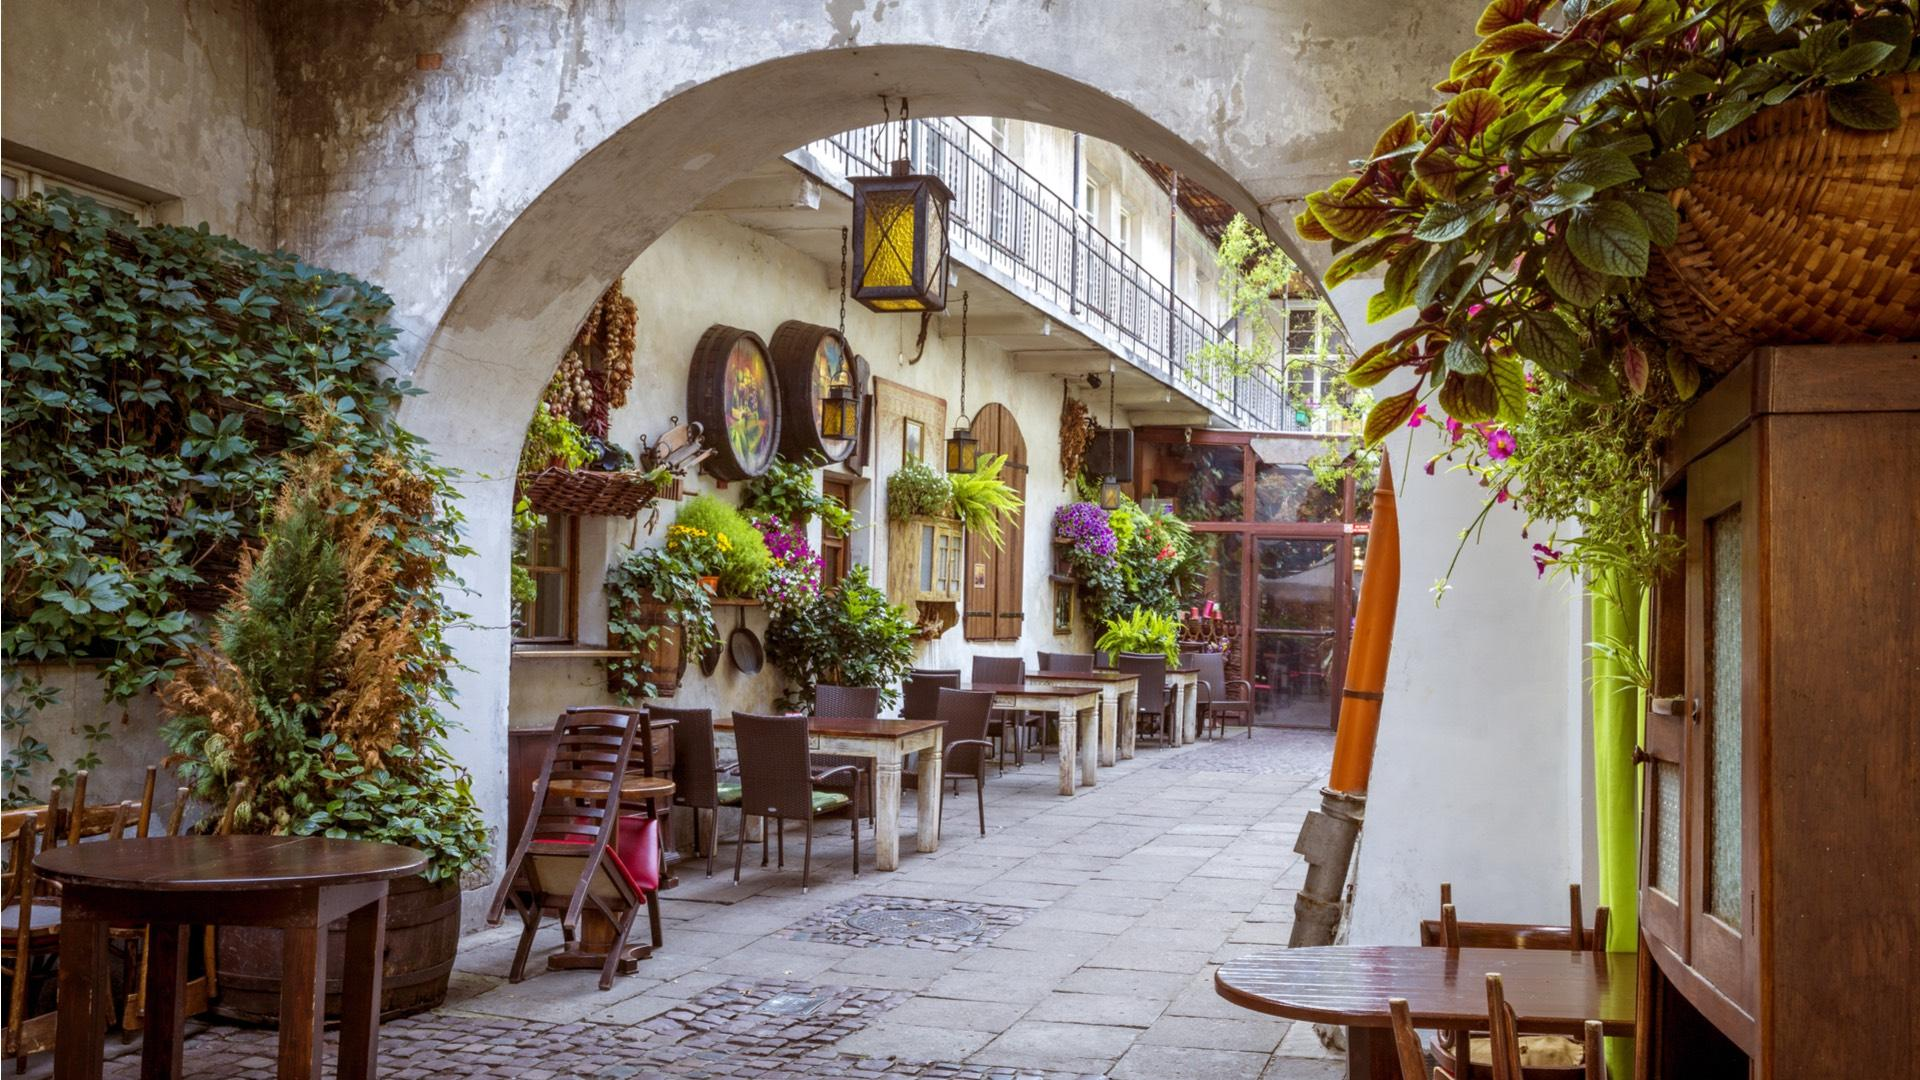 The alleys of Kazimierz have an artistic air. The district, deserted and neglected after World War II, has been renewed in recent years. Jews from around the whole world come here in search for their roots. – © Mikolajn / Shutterstock